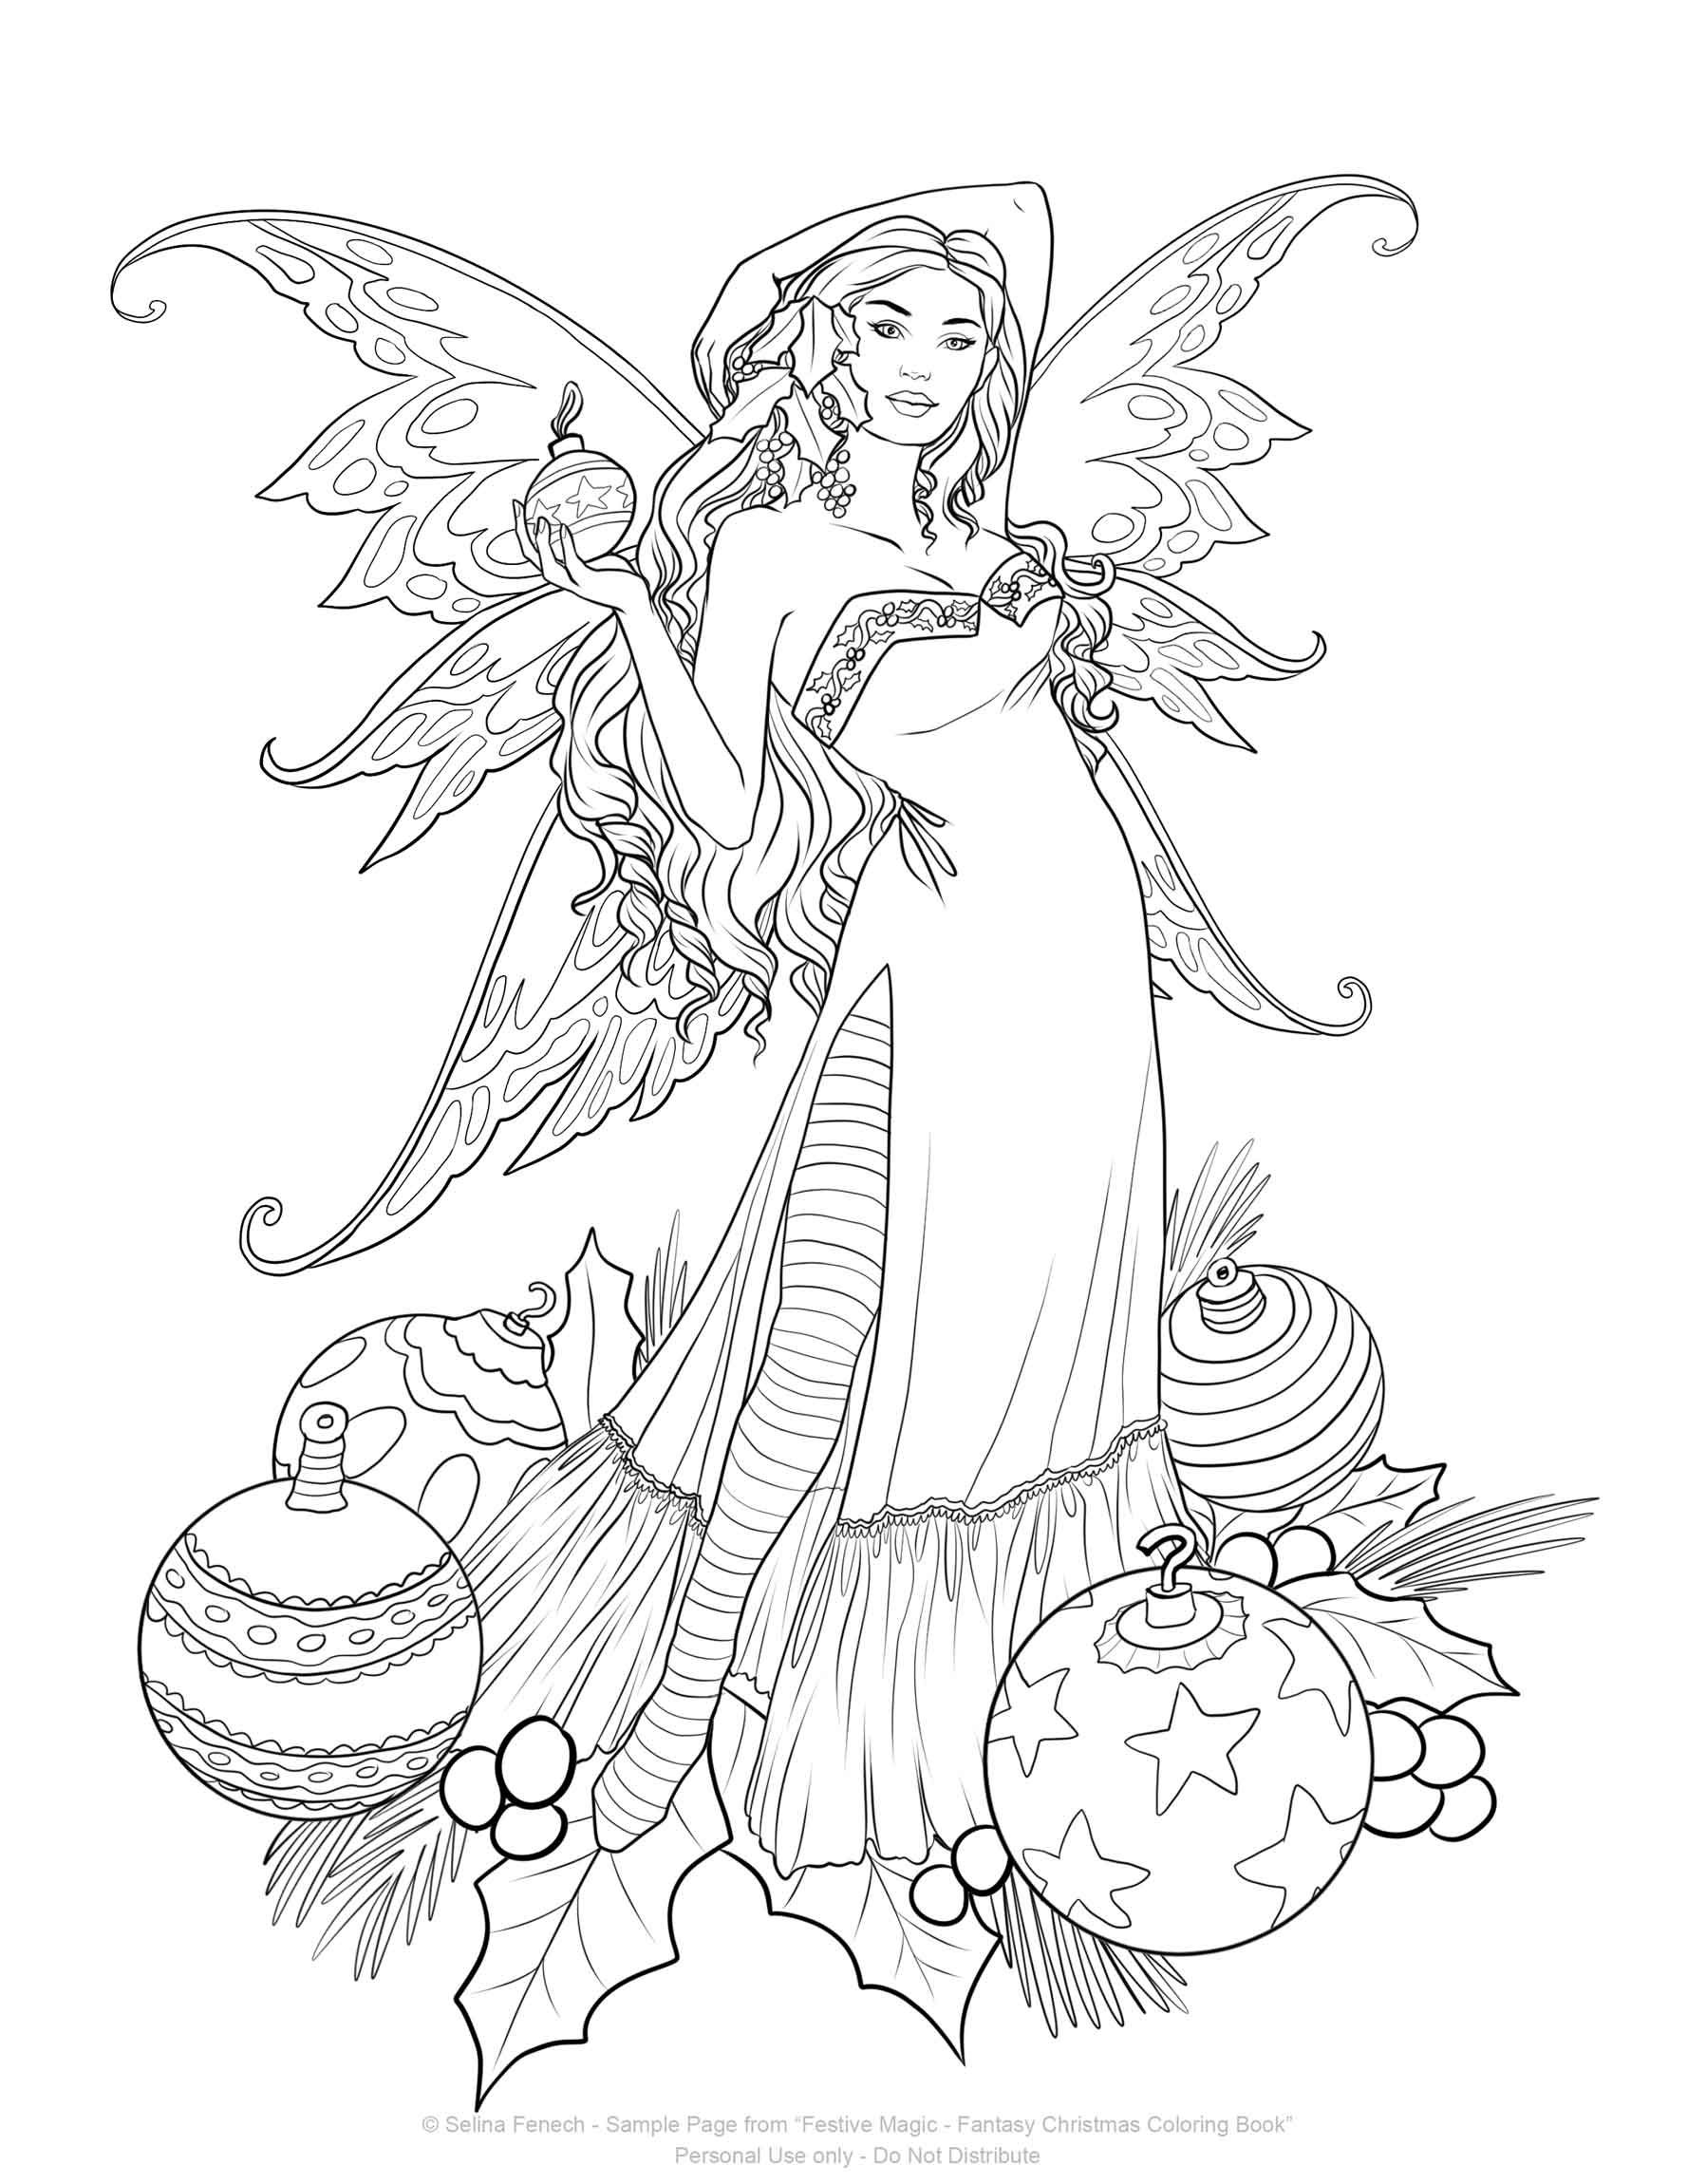 Pin By Erika On Coloring Pages Angel Coloring Pages Fairy Coloring Pages Fairy Coloring